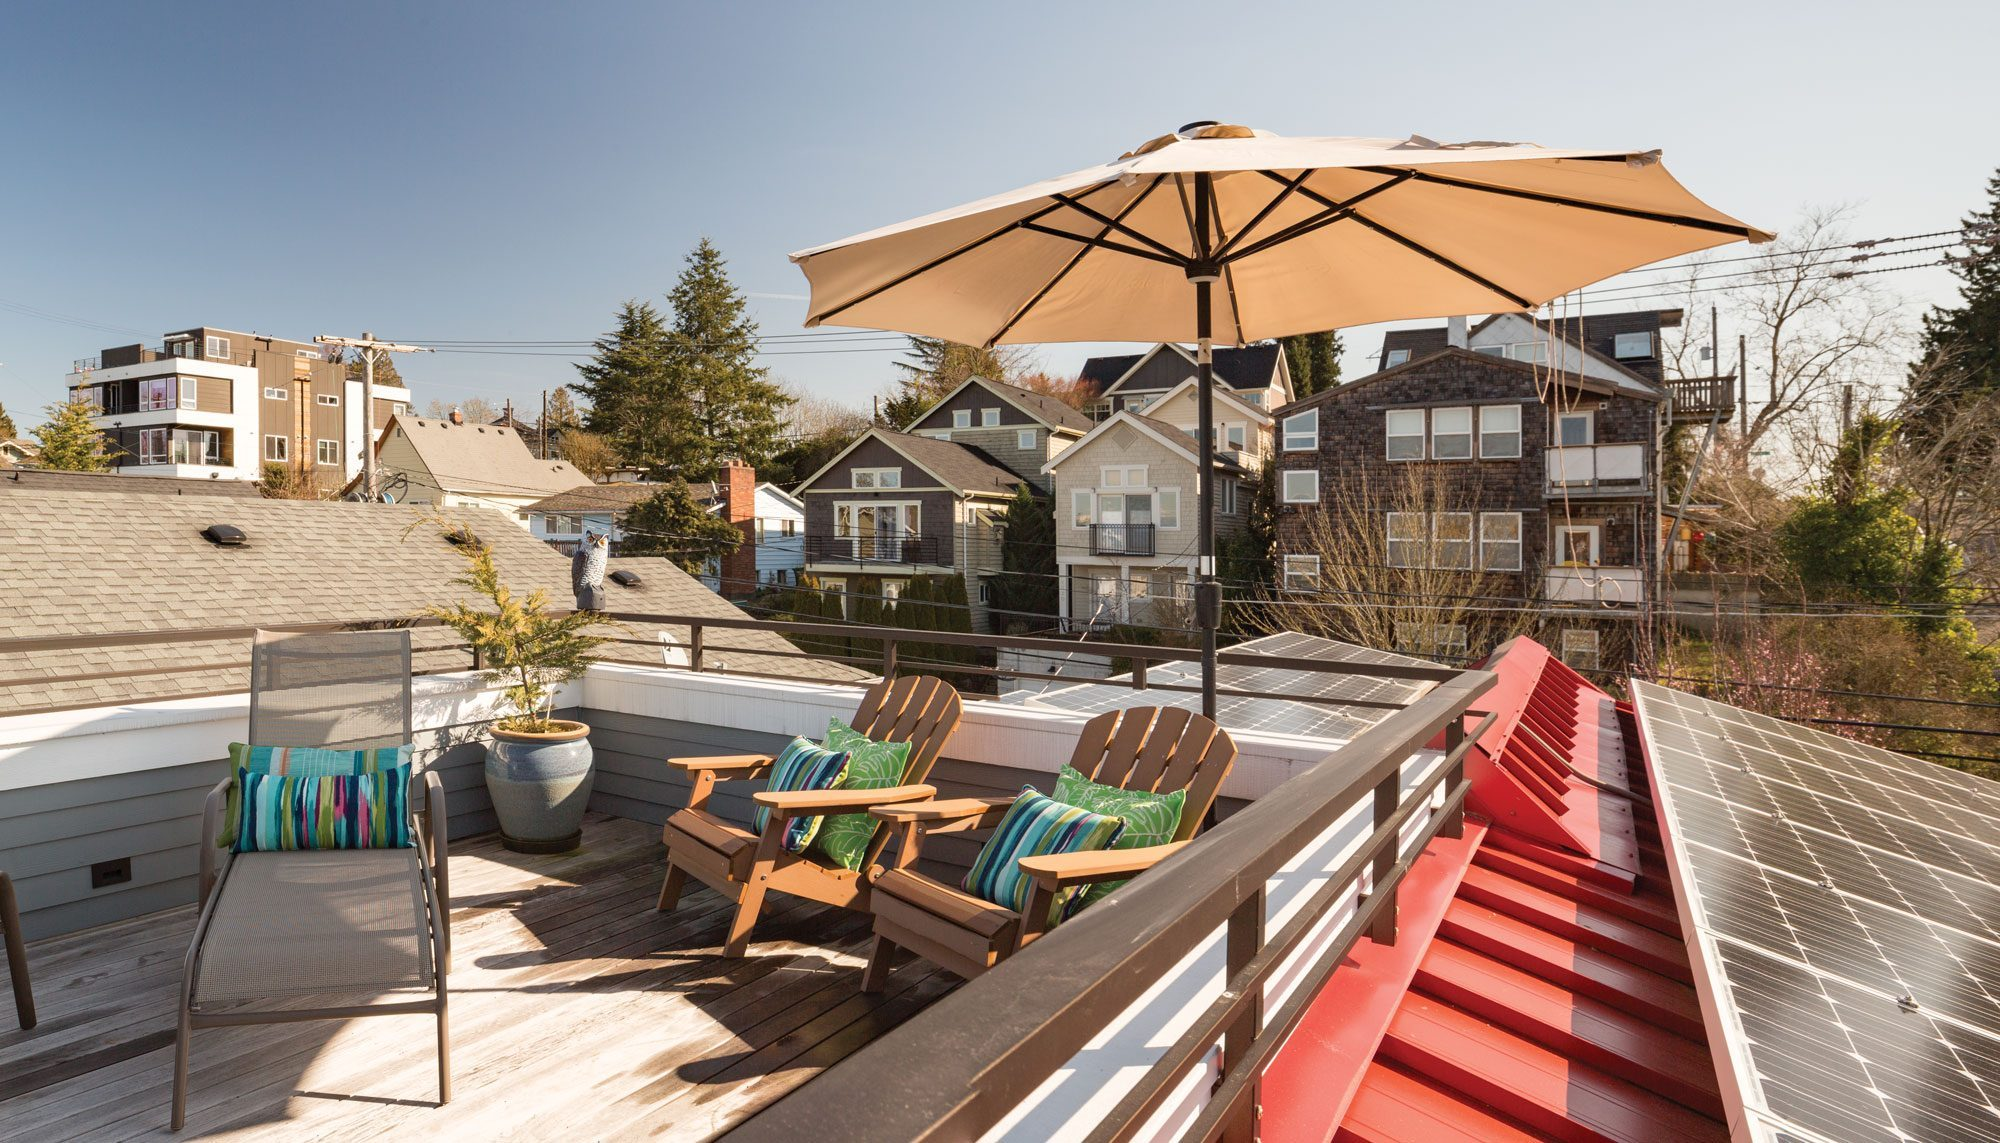 The New Rooftop Deck Of This 100 Year Old Leschi House